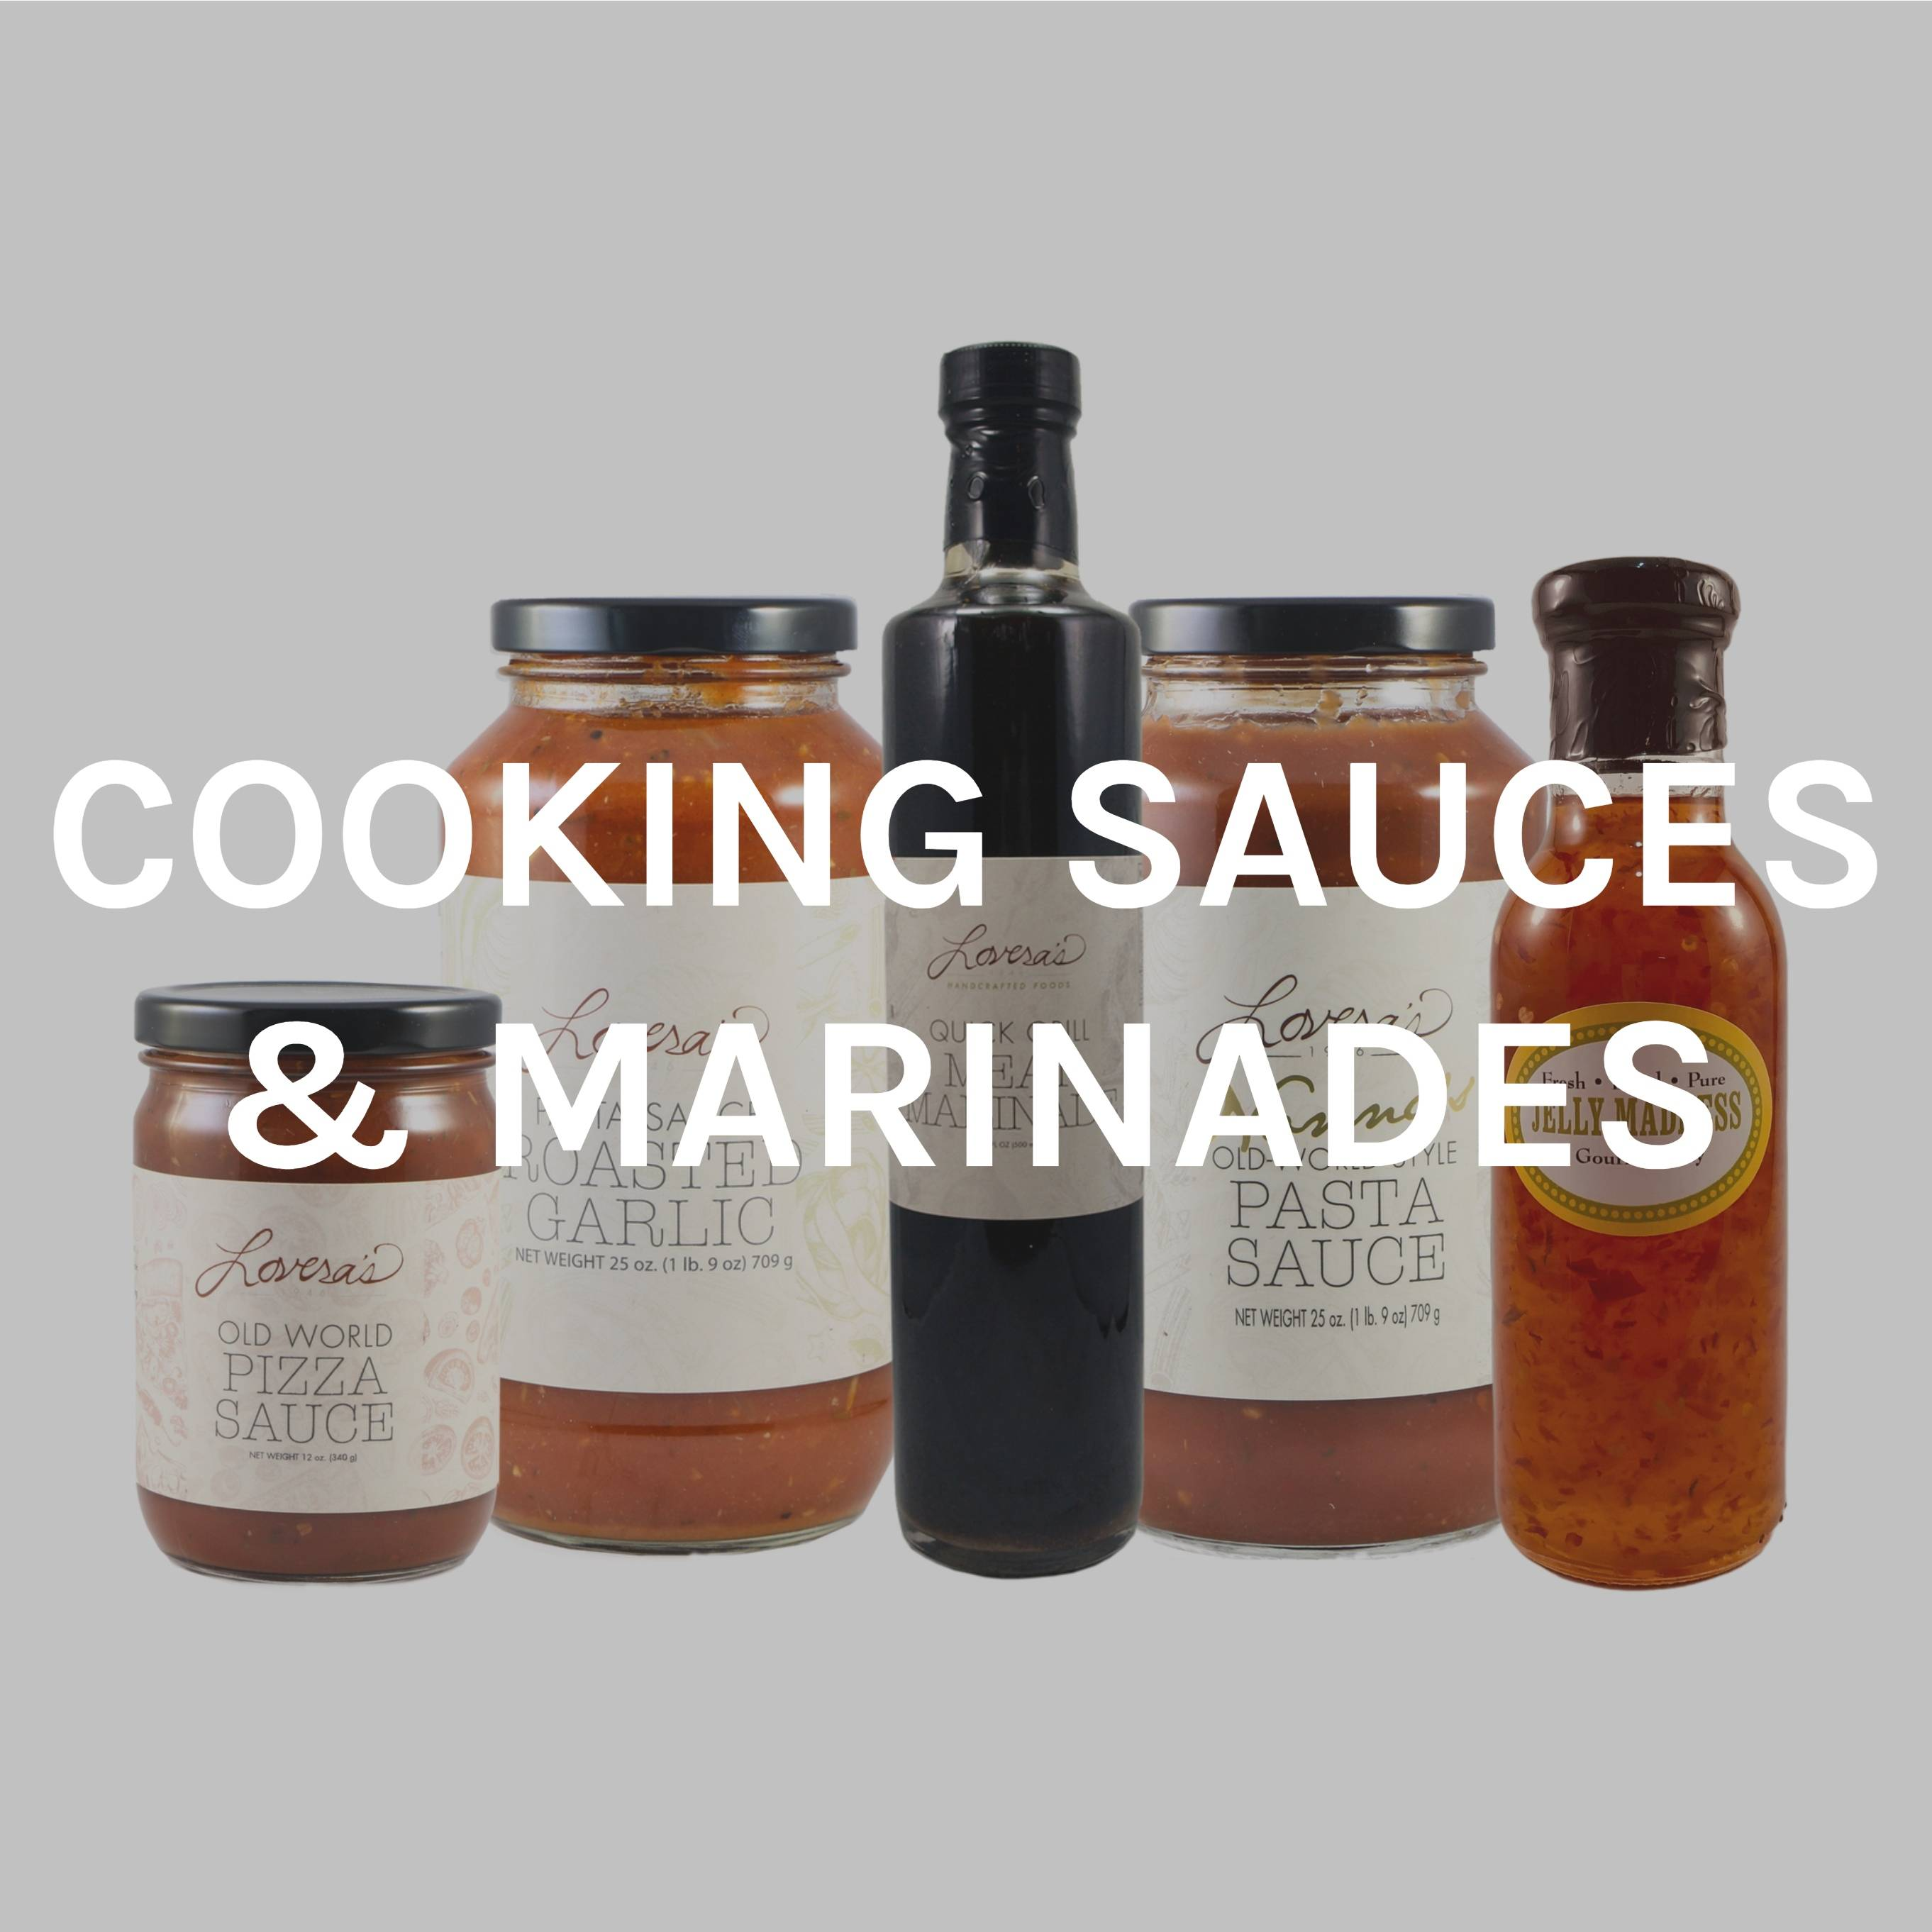 Cooking Sauces & Marinades